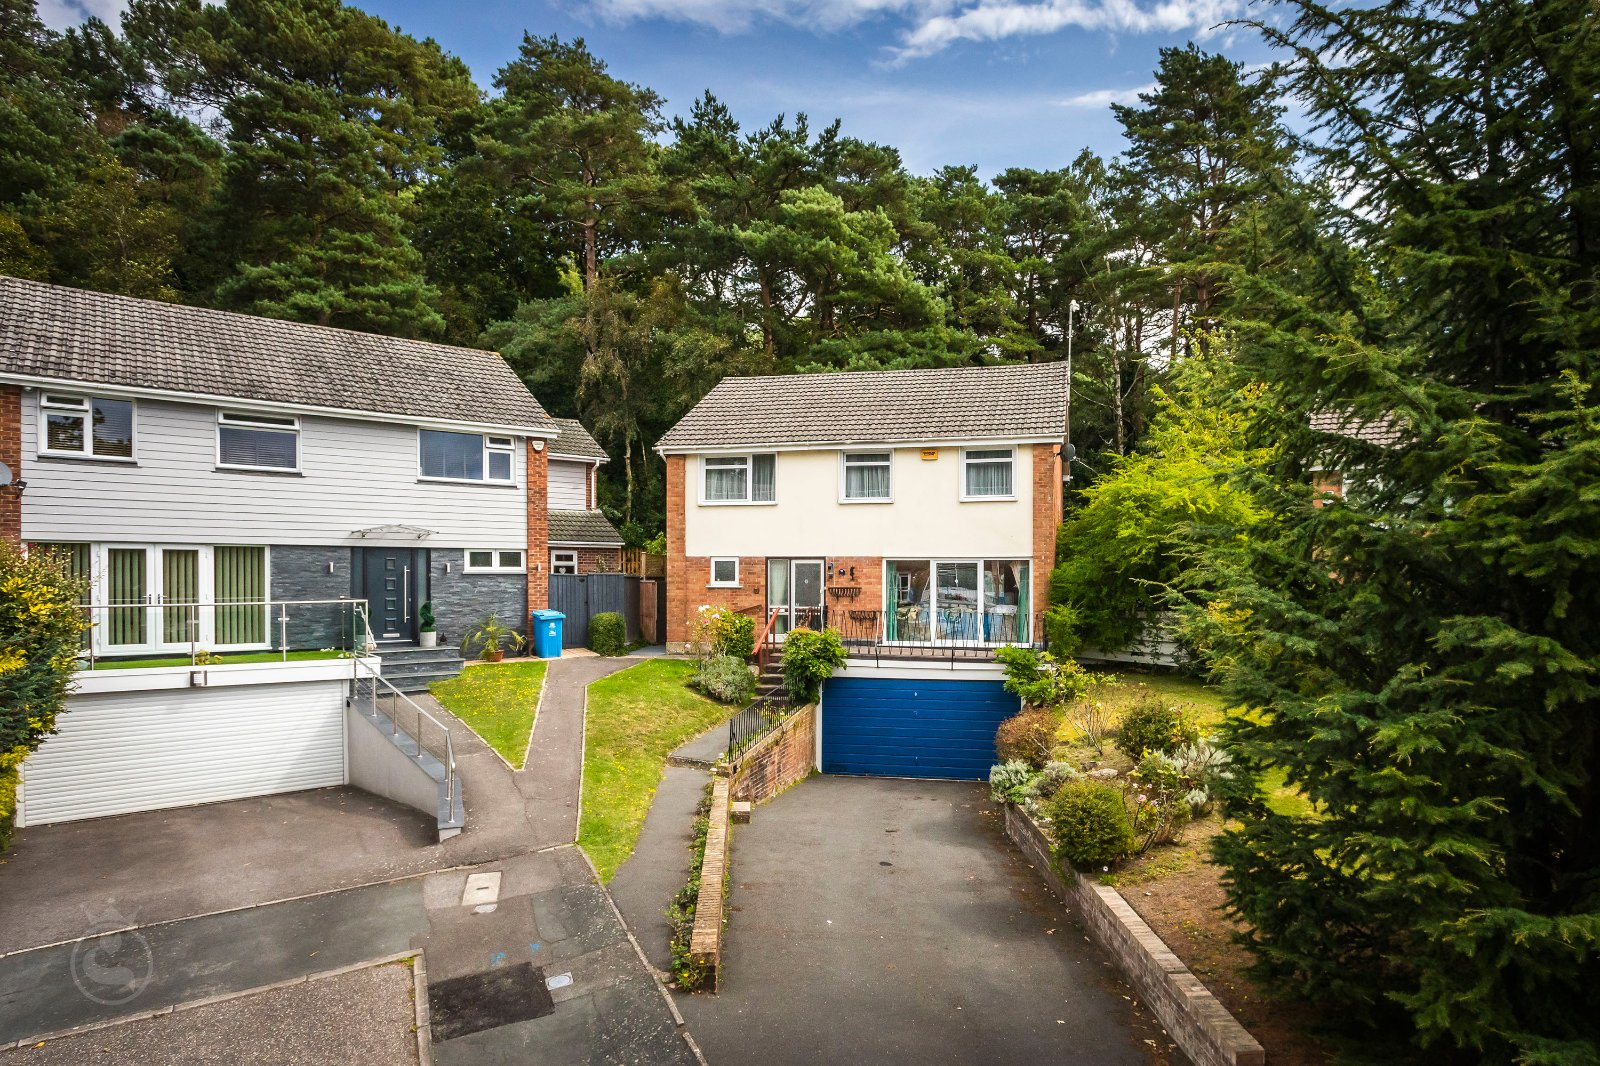 4 bed house for sale in Felton Road, Lower Parkstone 0